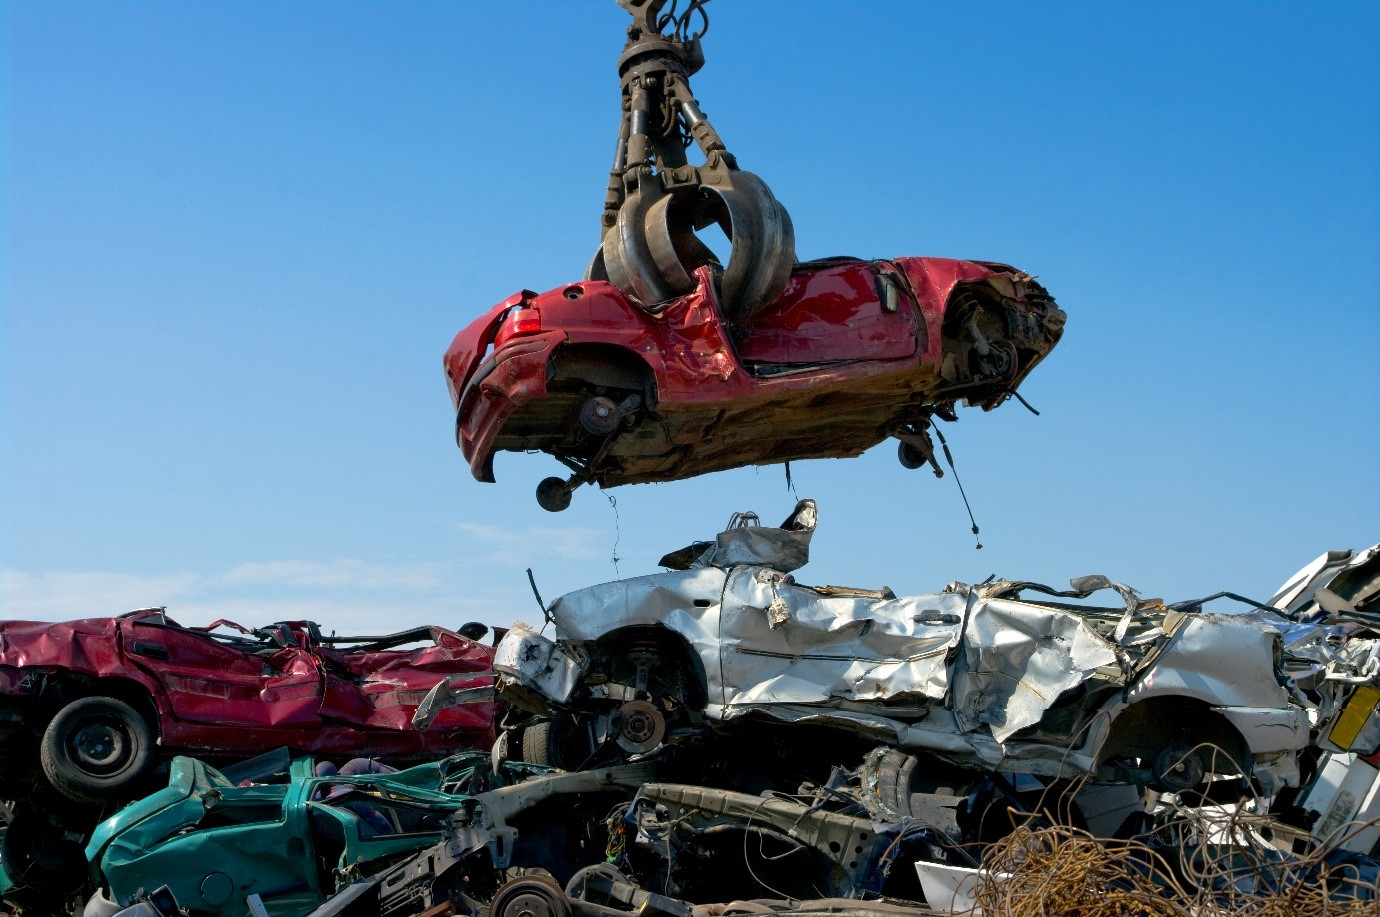 A Car being Recycled